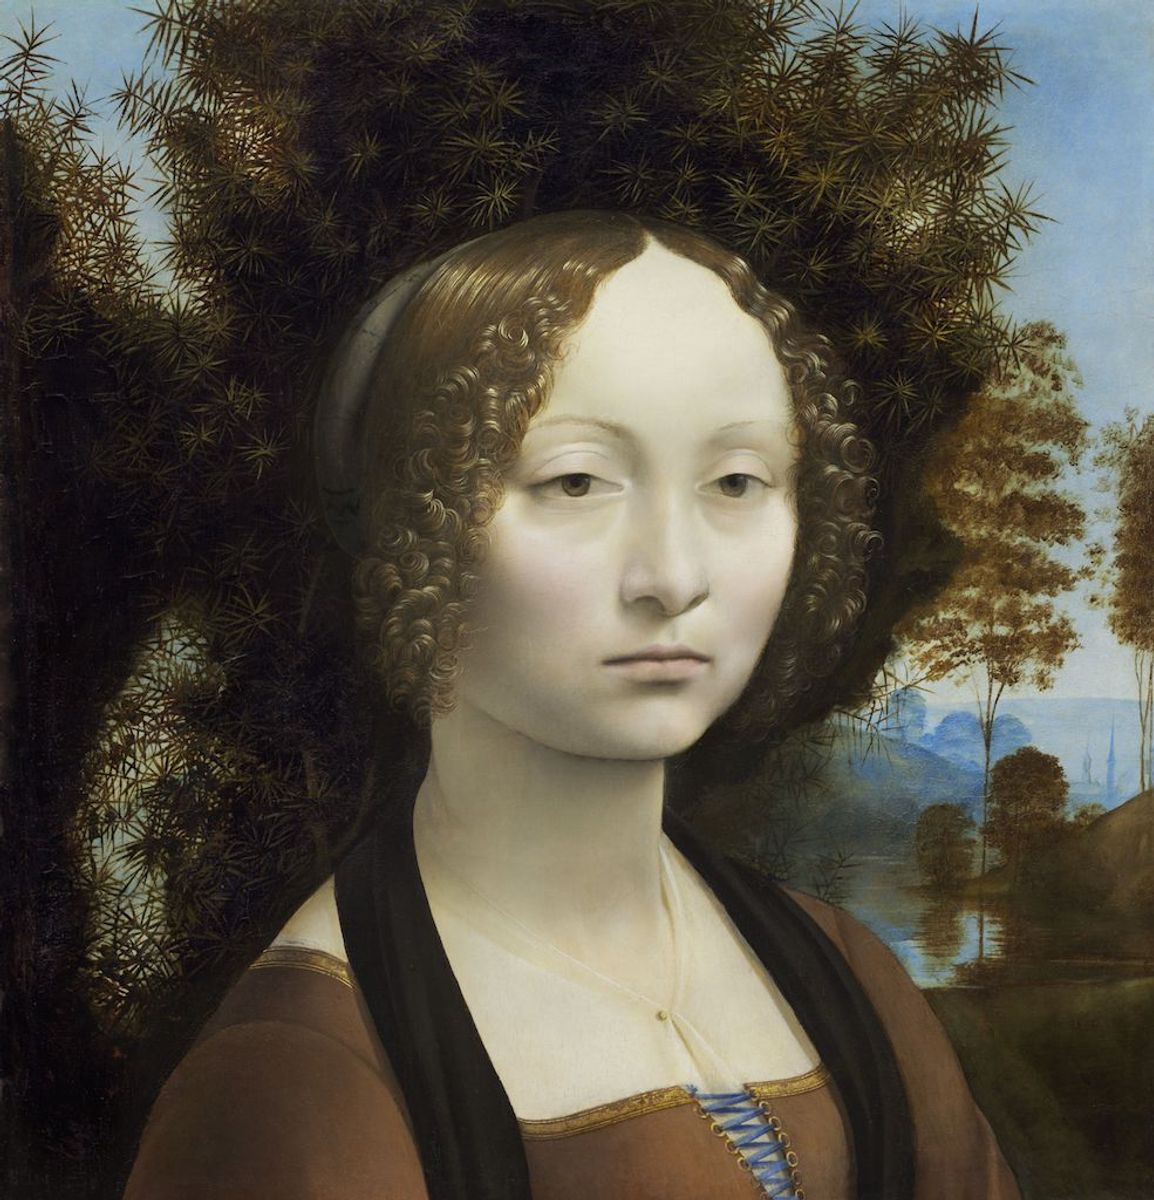 Five Leonardo Scholars Selected Their Favorite Work by the Italian Master. None Picked 'Mona Lisa'